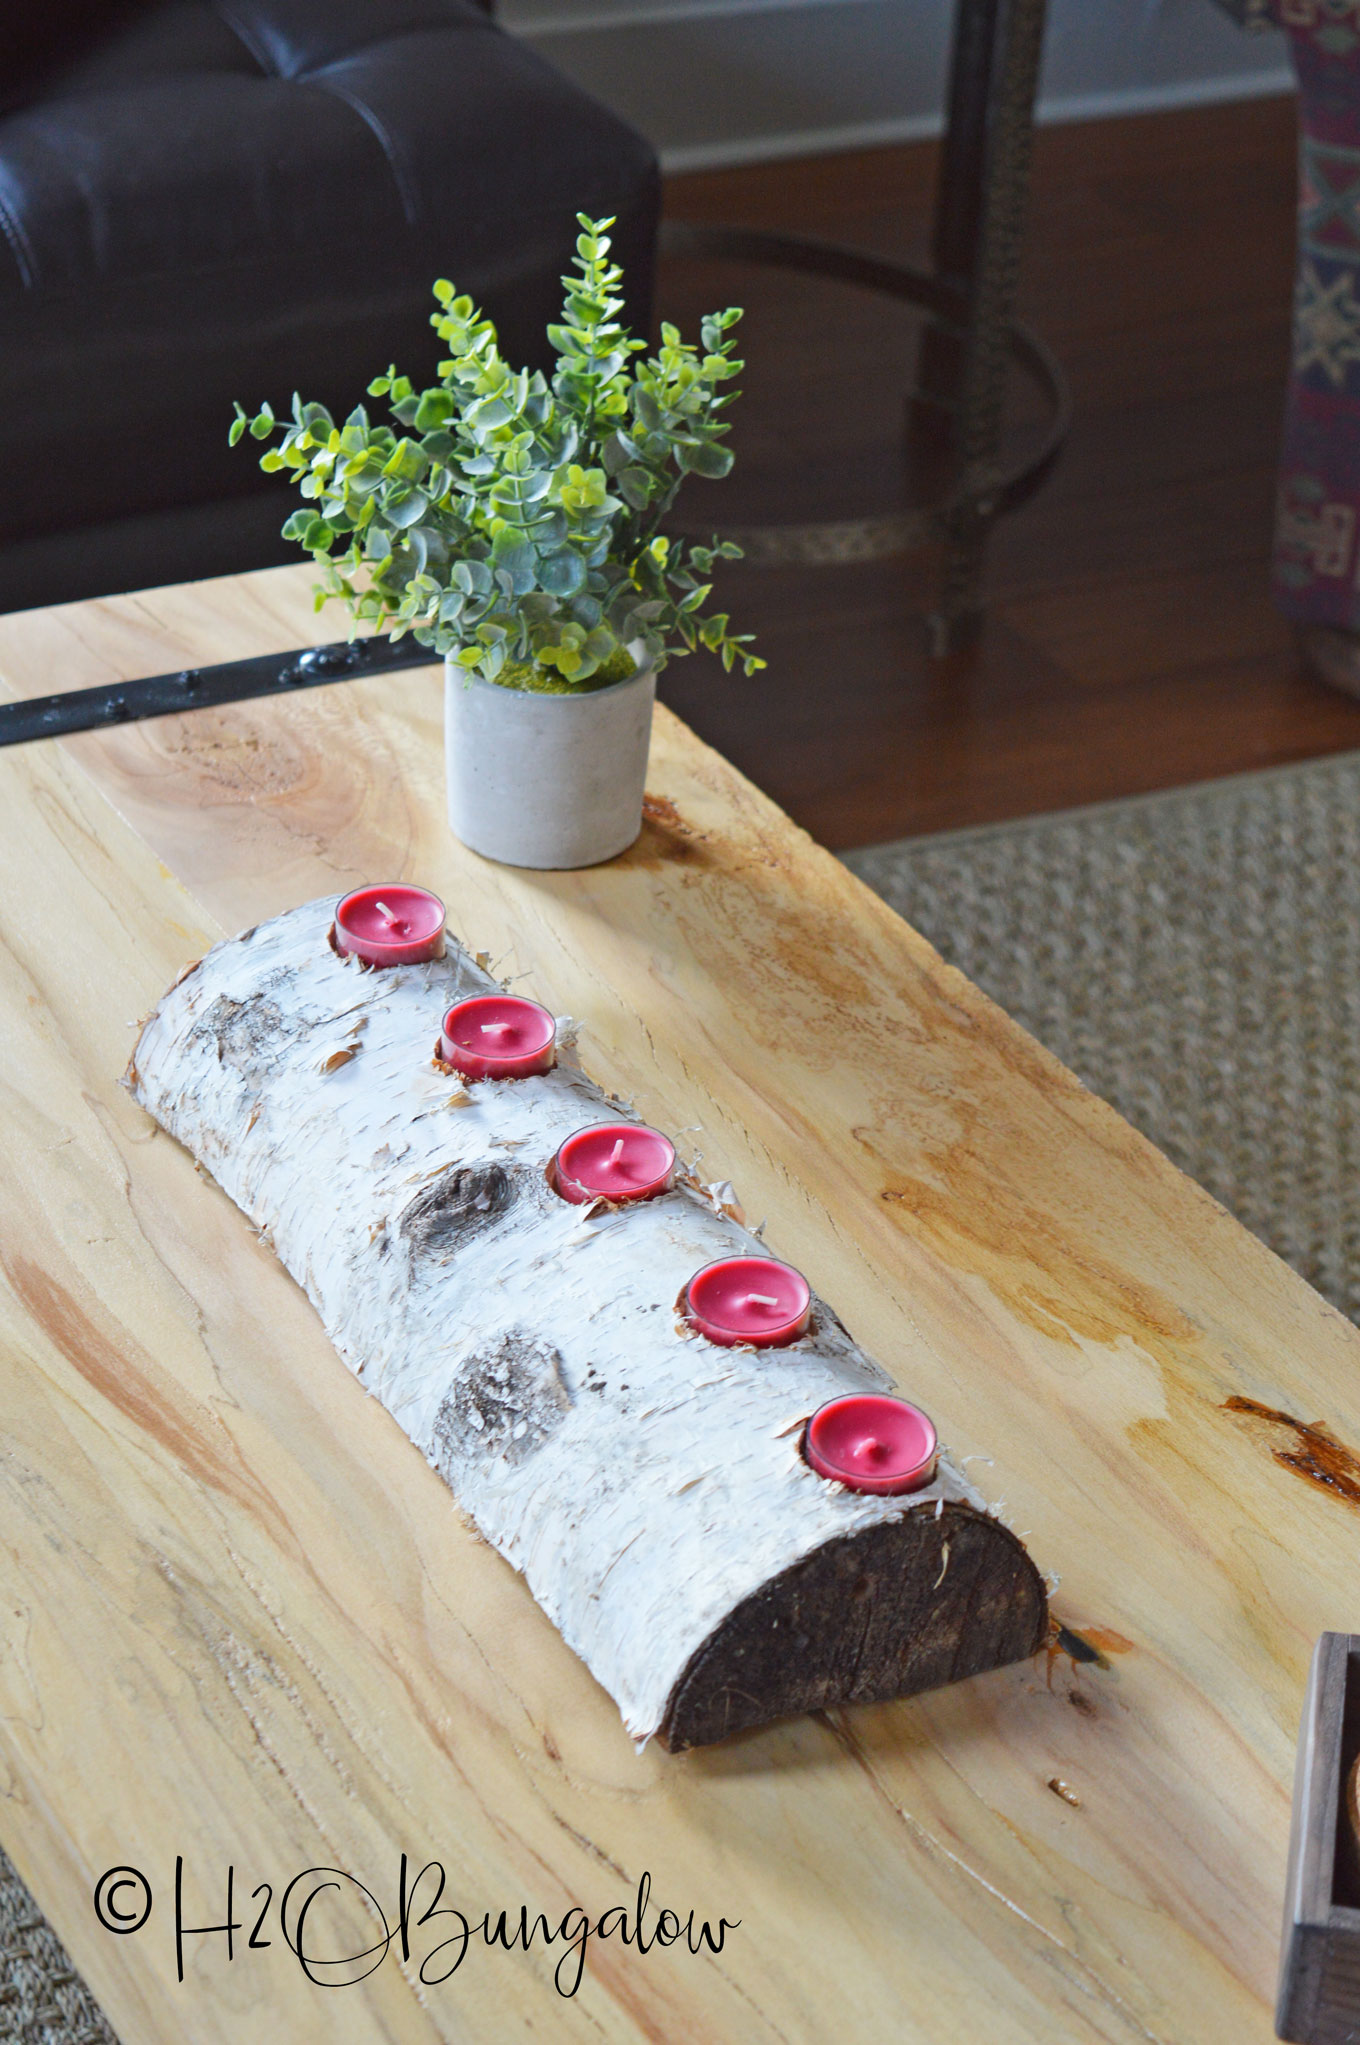 Tutorial and tips to make a DIY log candle holder from a split log. Rough bark logs or birch log candleholders look great year round in a rustic setting.